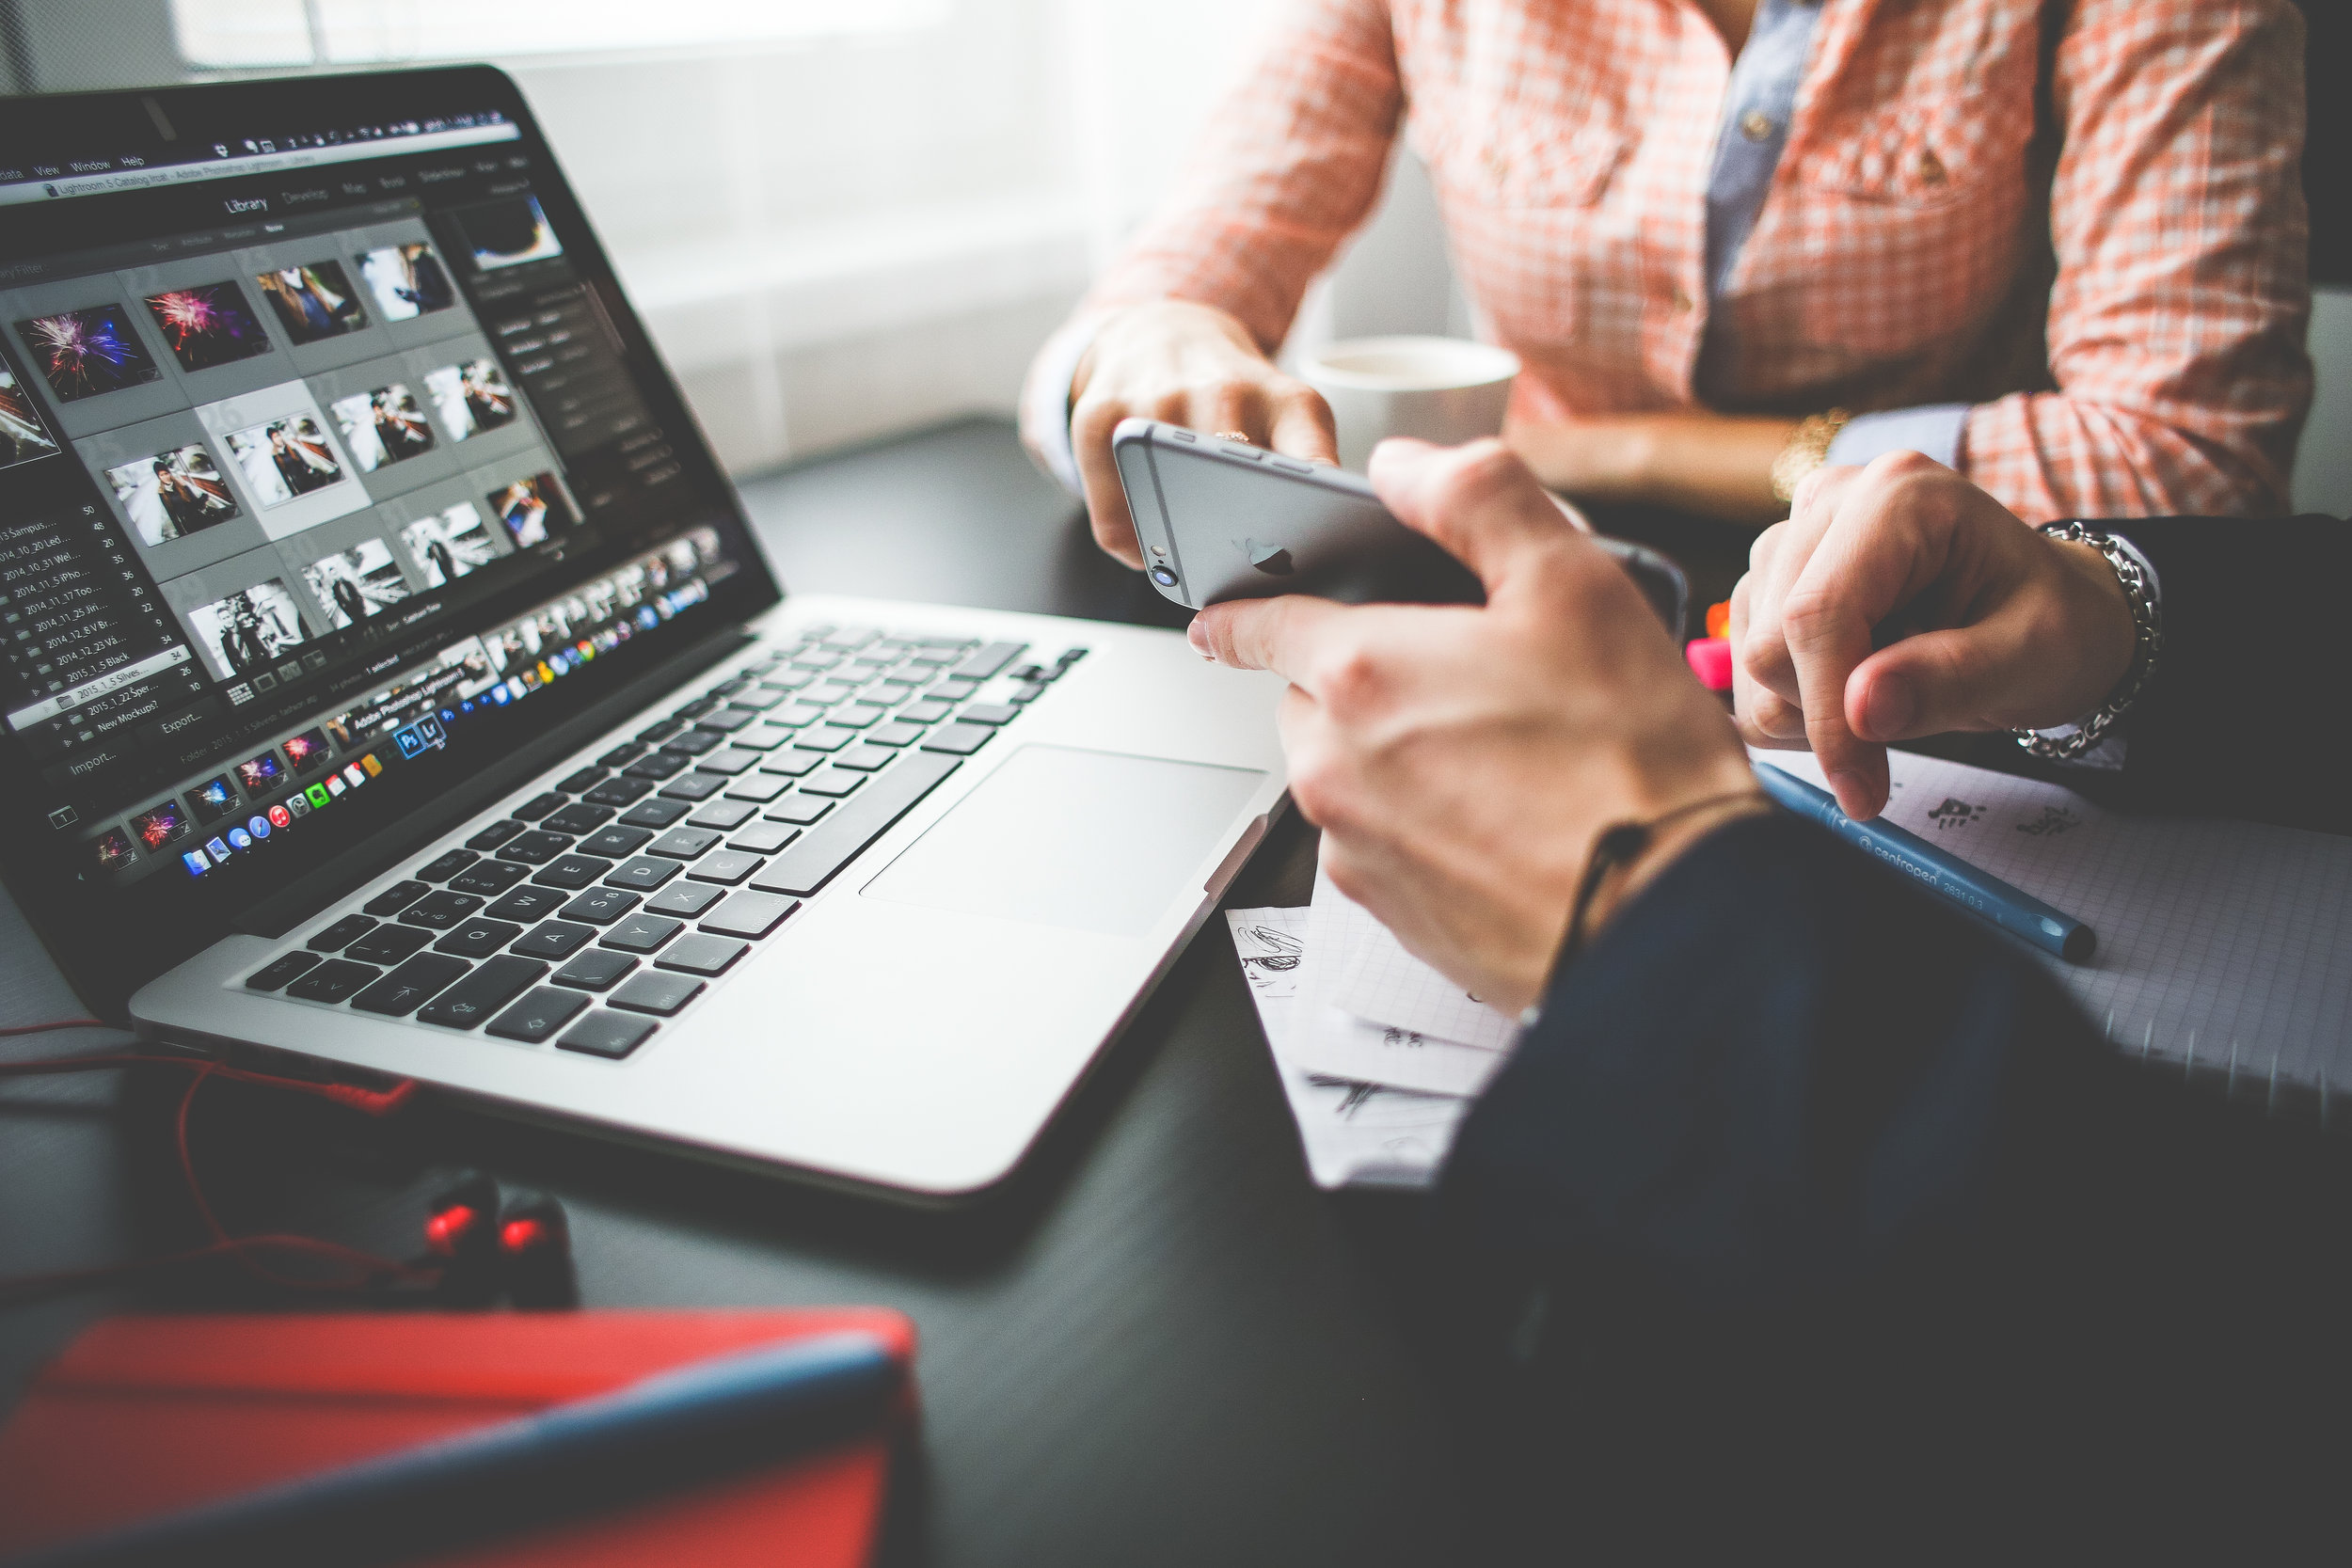 Marketing Consulting. - If your business already has an established in-house marketing department, you may not need the services of a marketing agency. But there are always new things to learn, and our hands-on marketing consultations can help transform your marketing department from good to great.